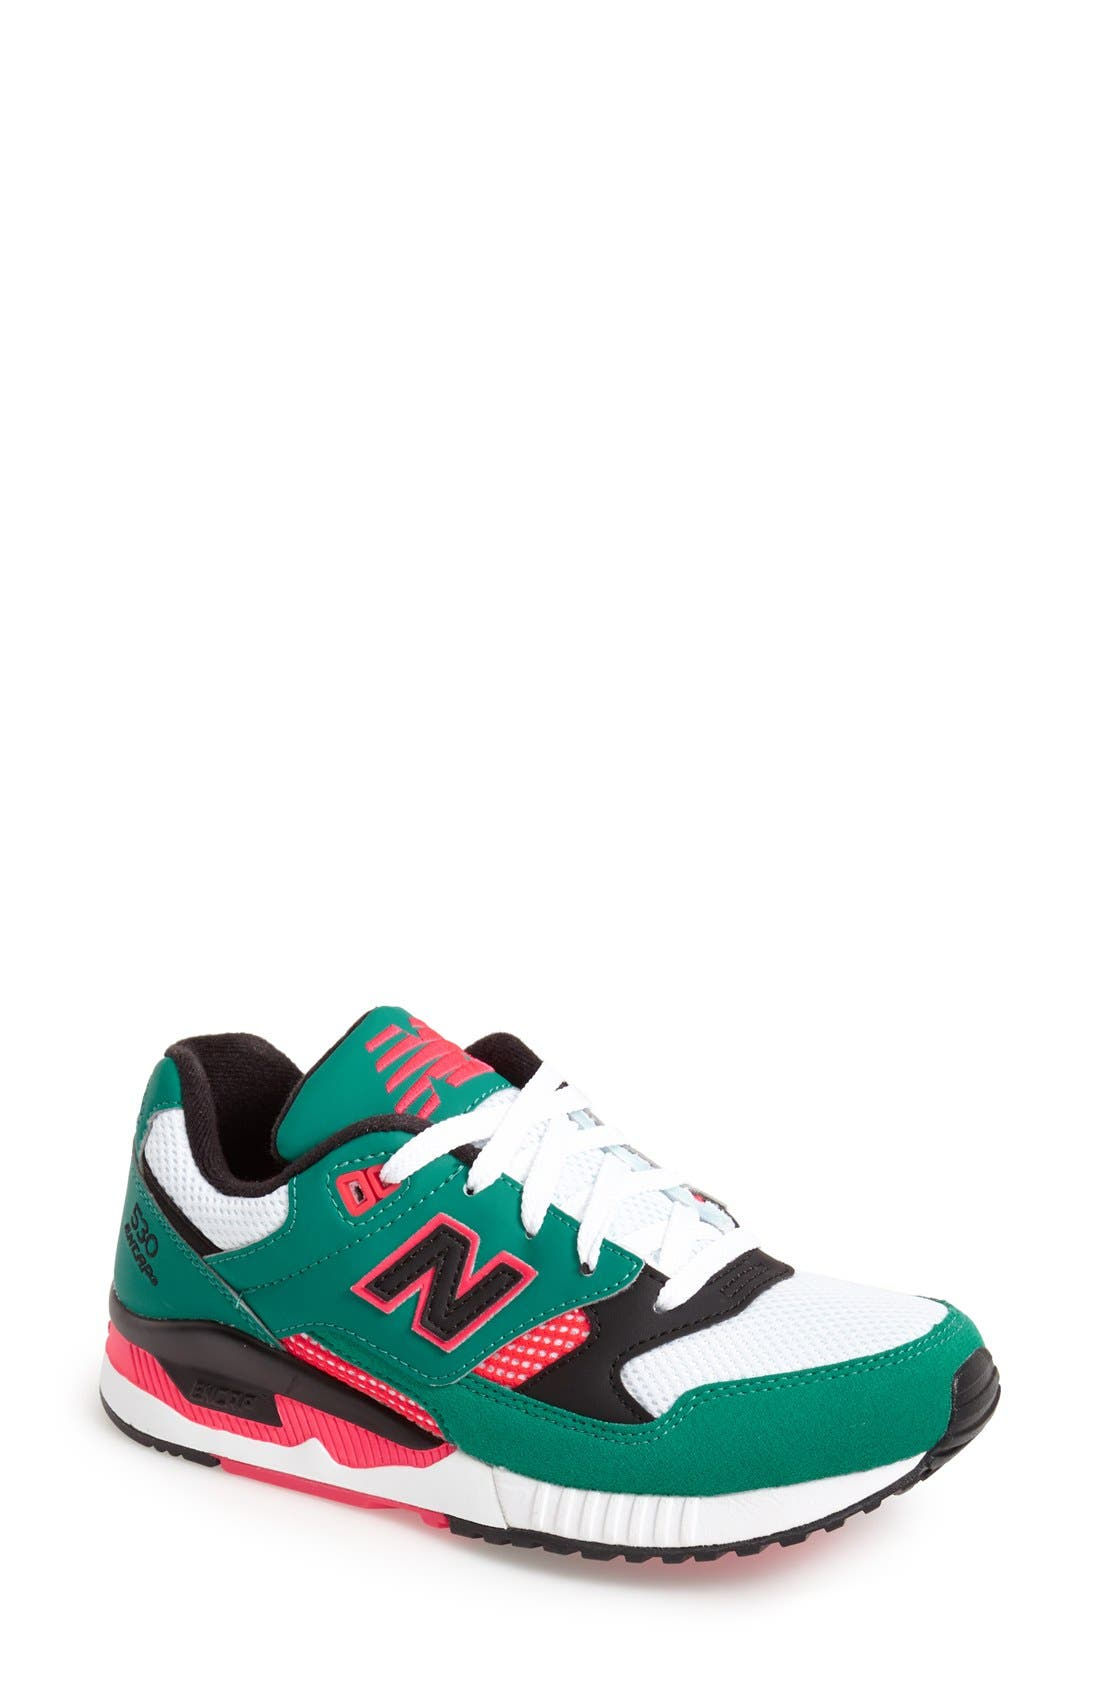 Alternate Image 1 Selected - New Balance '530' Sneaker (Women)